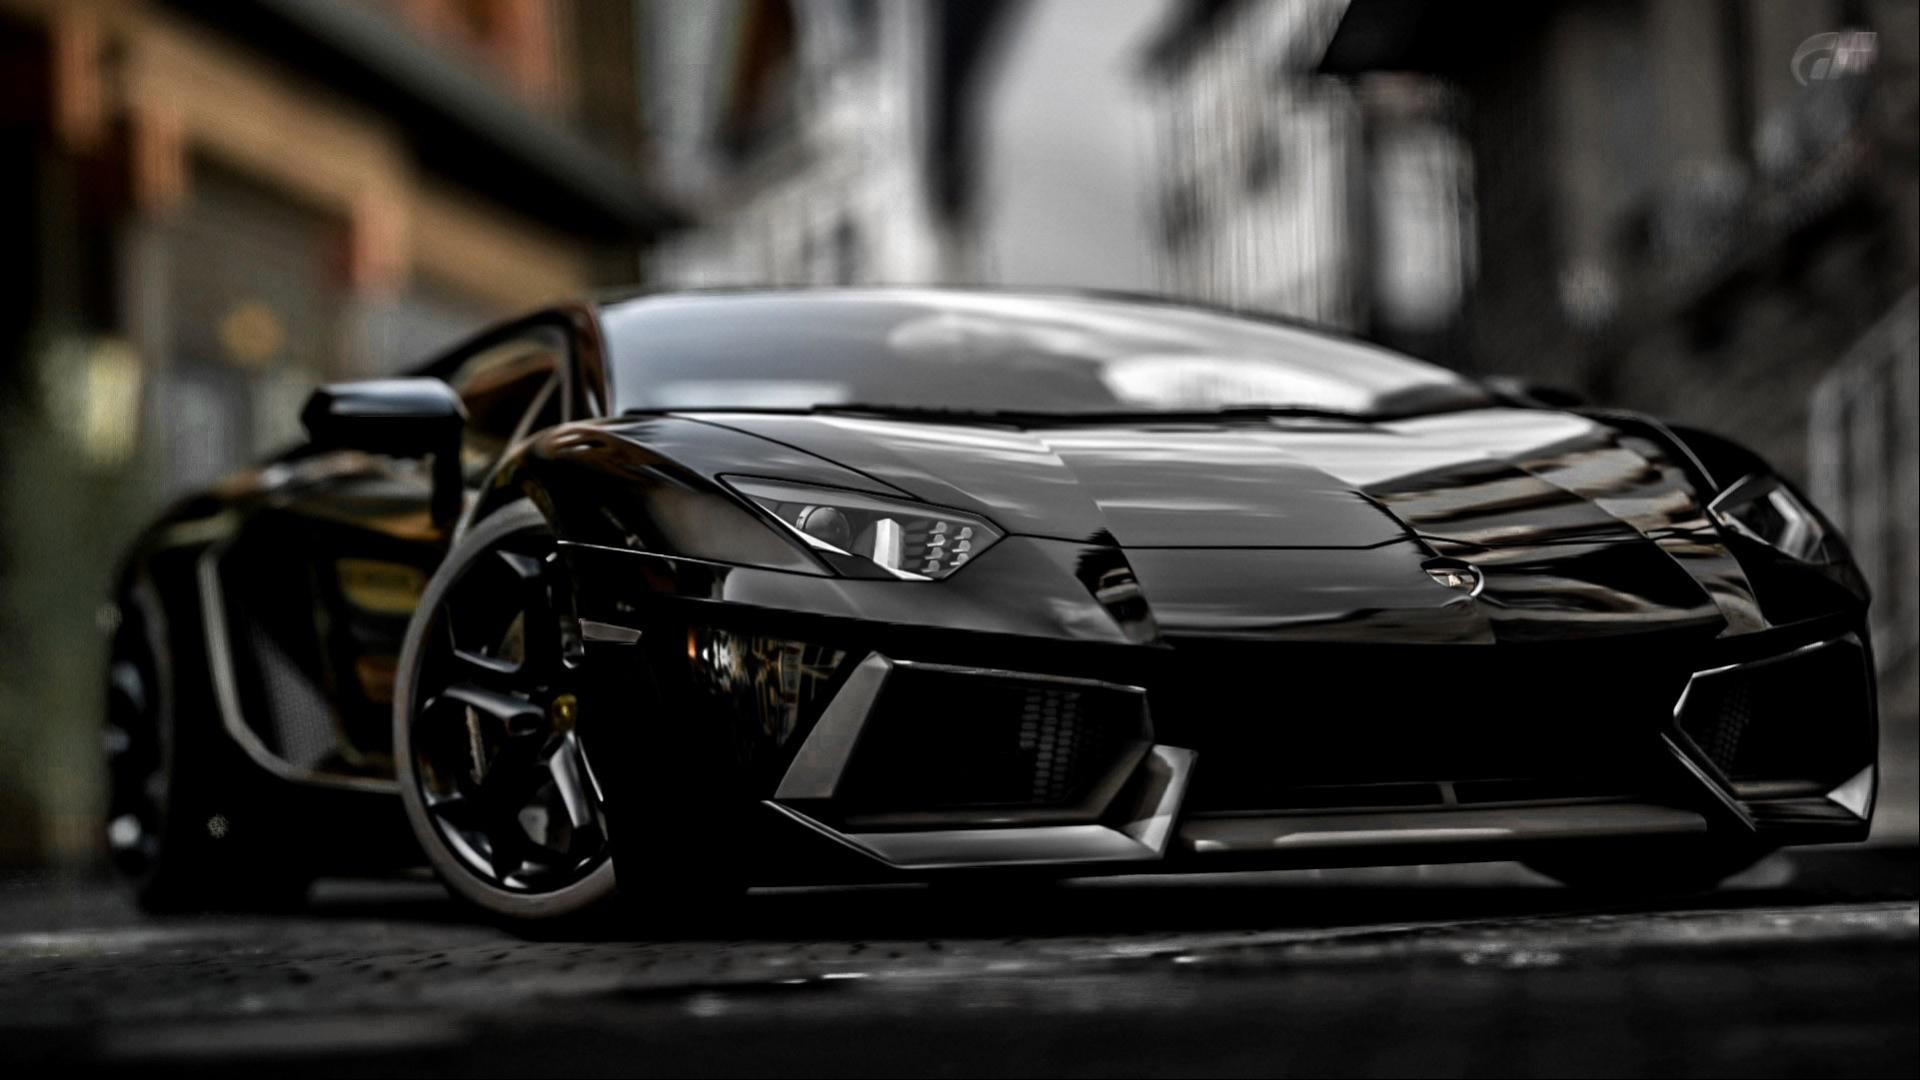 71 New Cars Wallpapers on WallpaperPlay